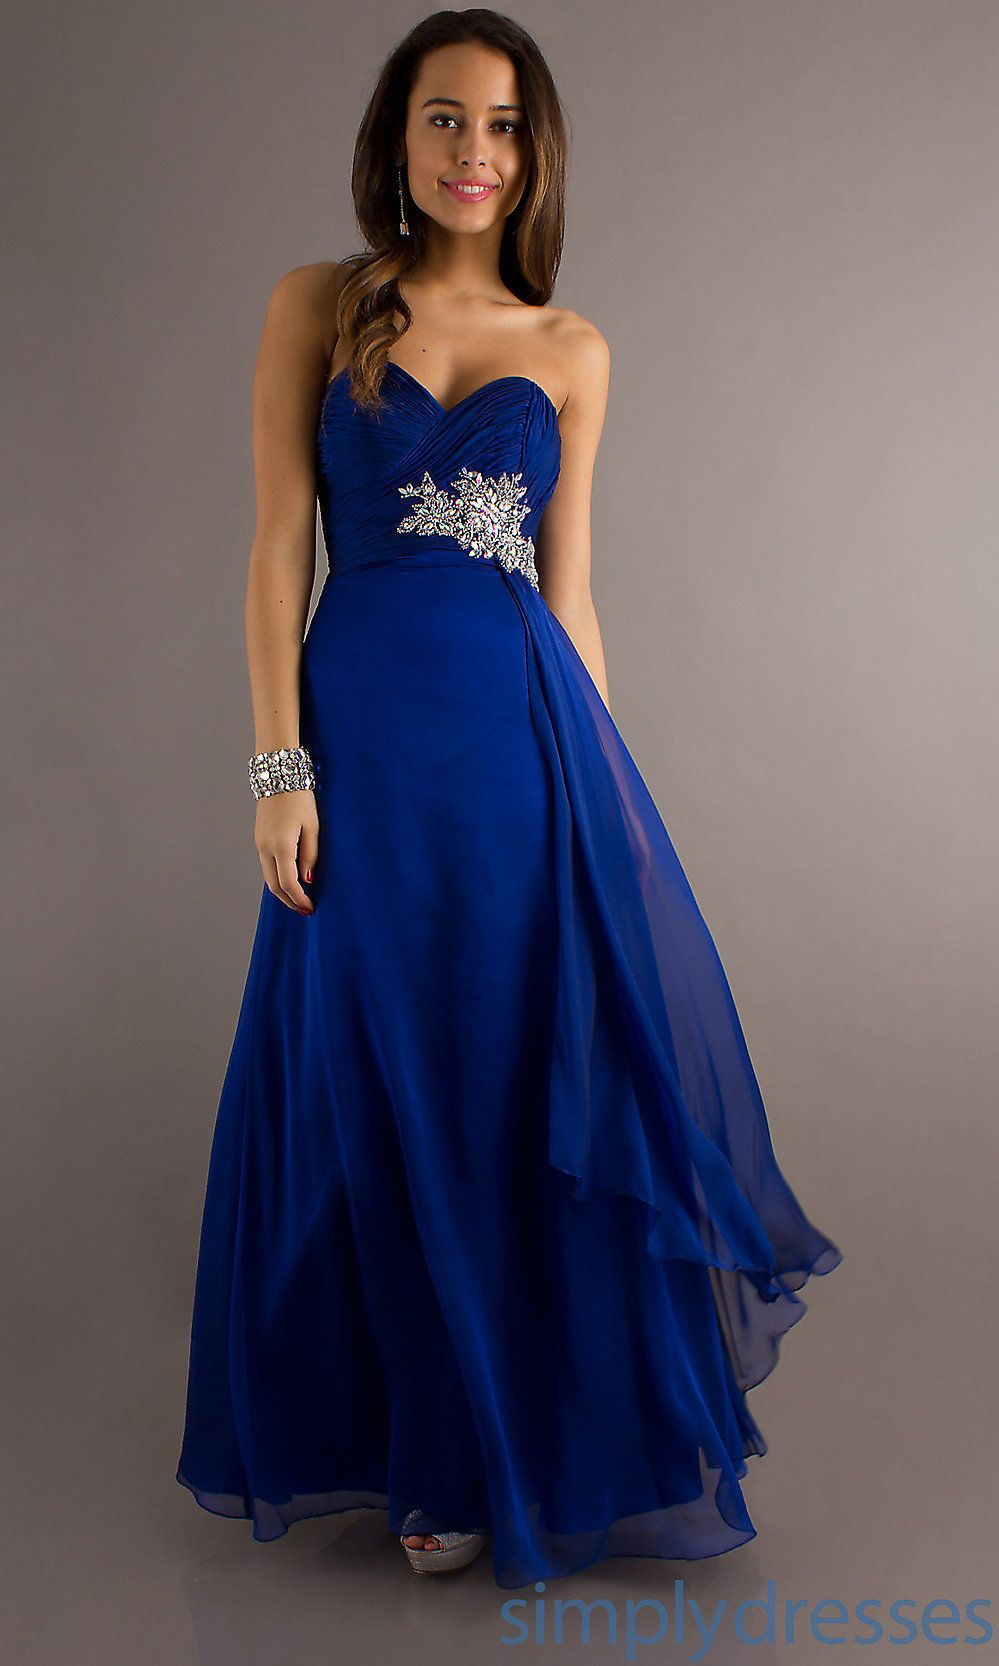 Bridesmaid Dresses Royal Blue And Silver 1